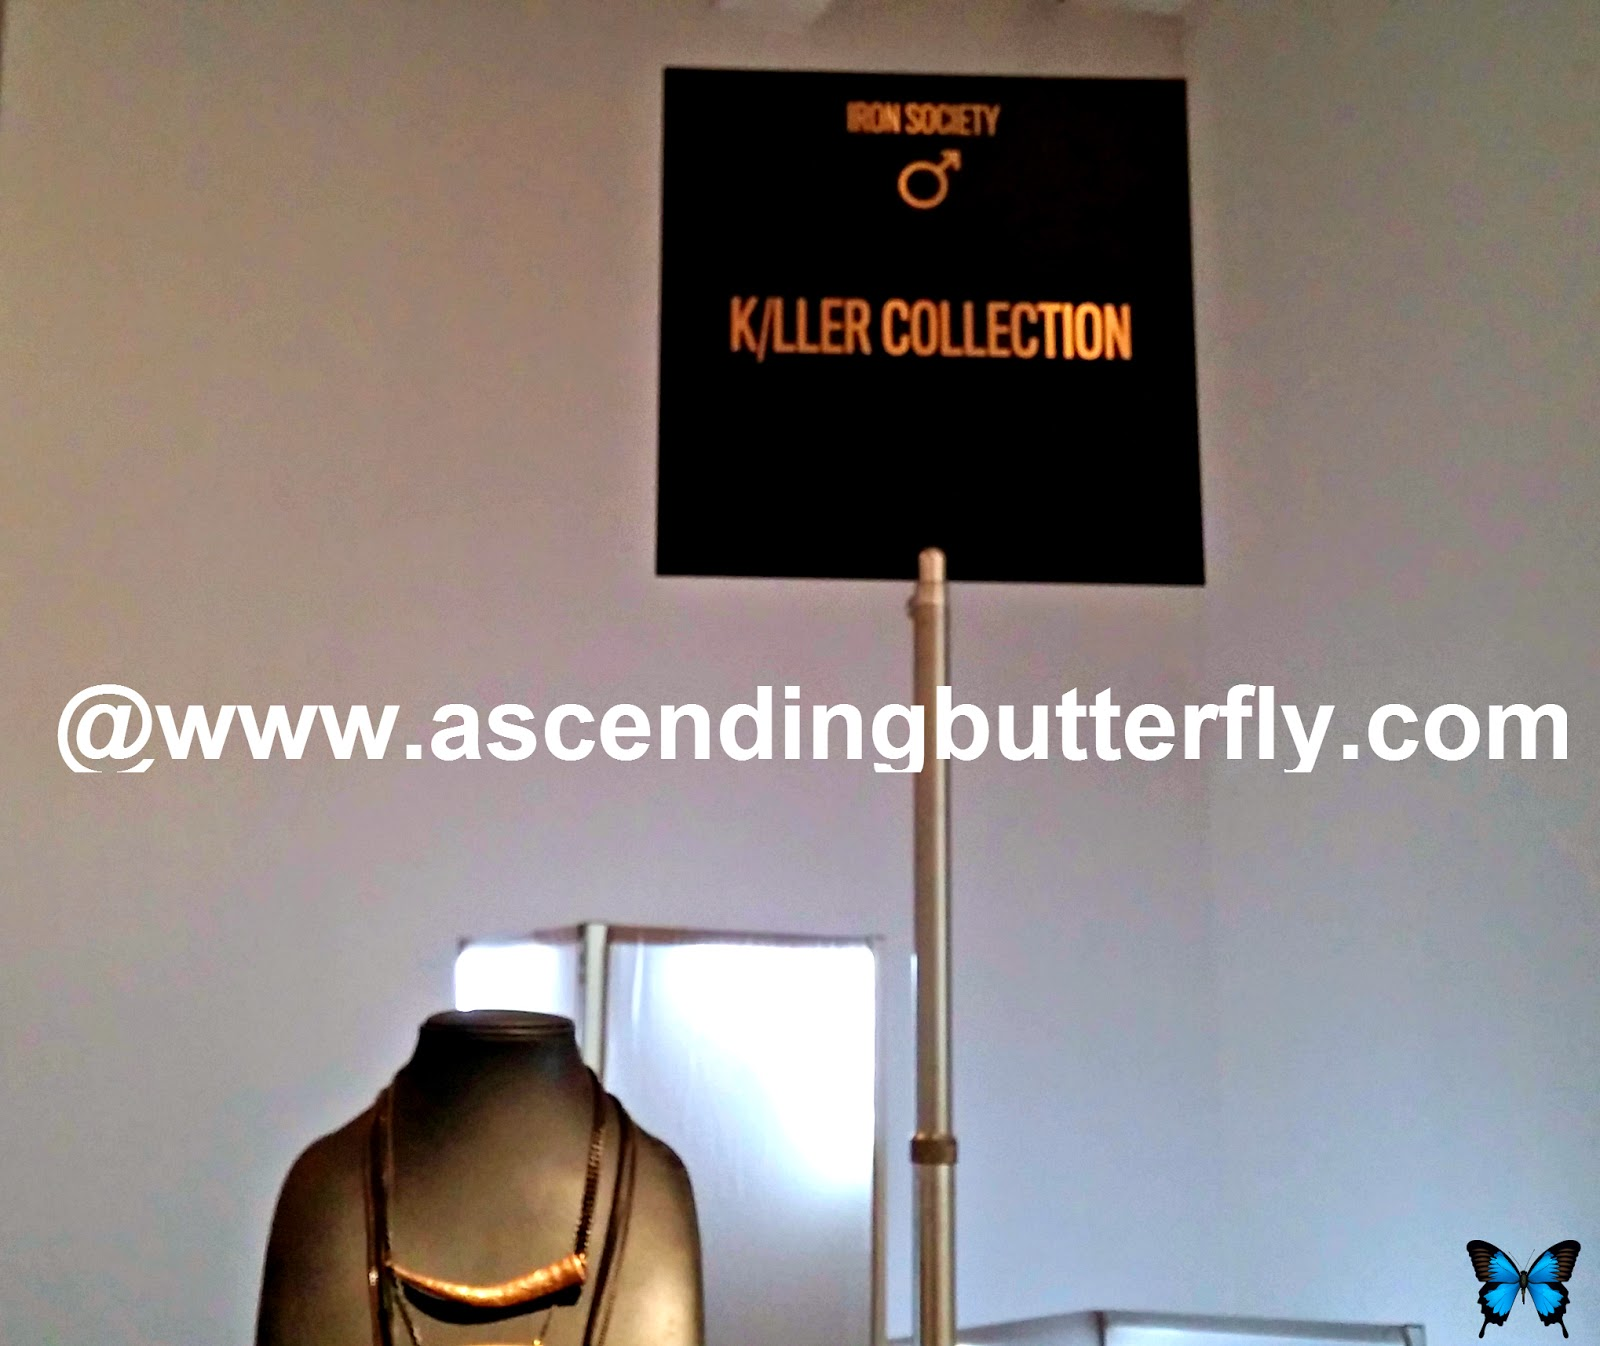 k/ller collection Jewelry on Display at Elements Showcase New York City February 2014